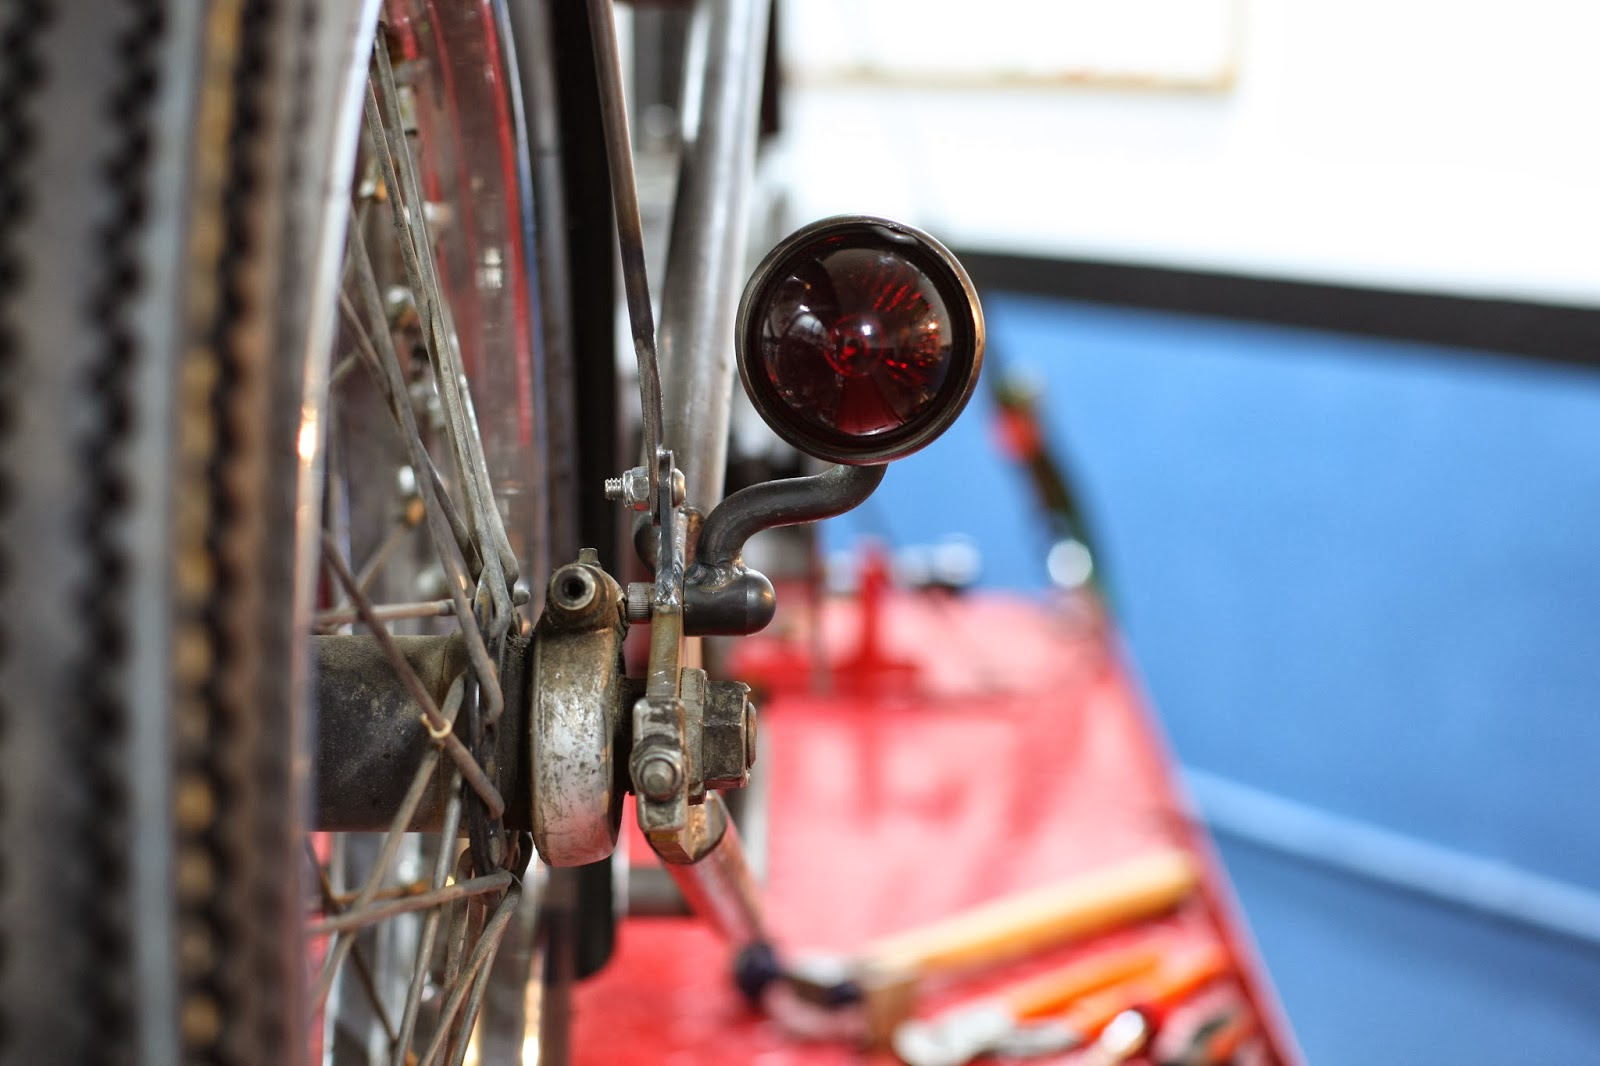 Bonneville rear lights